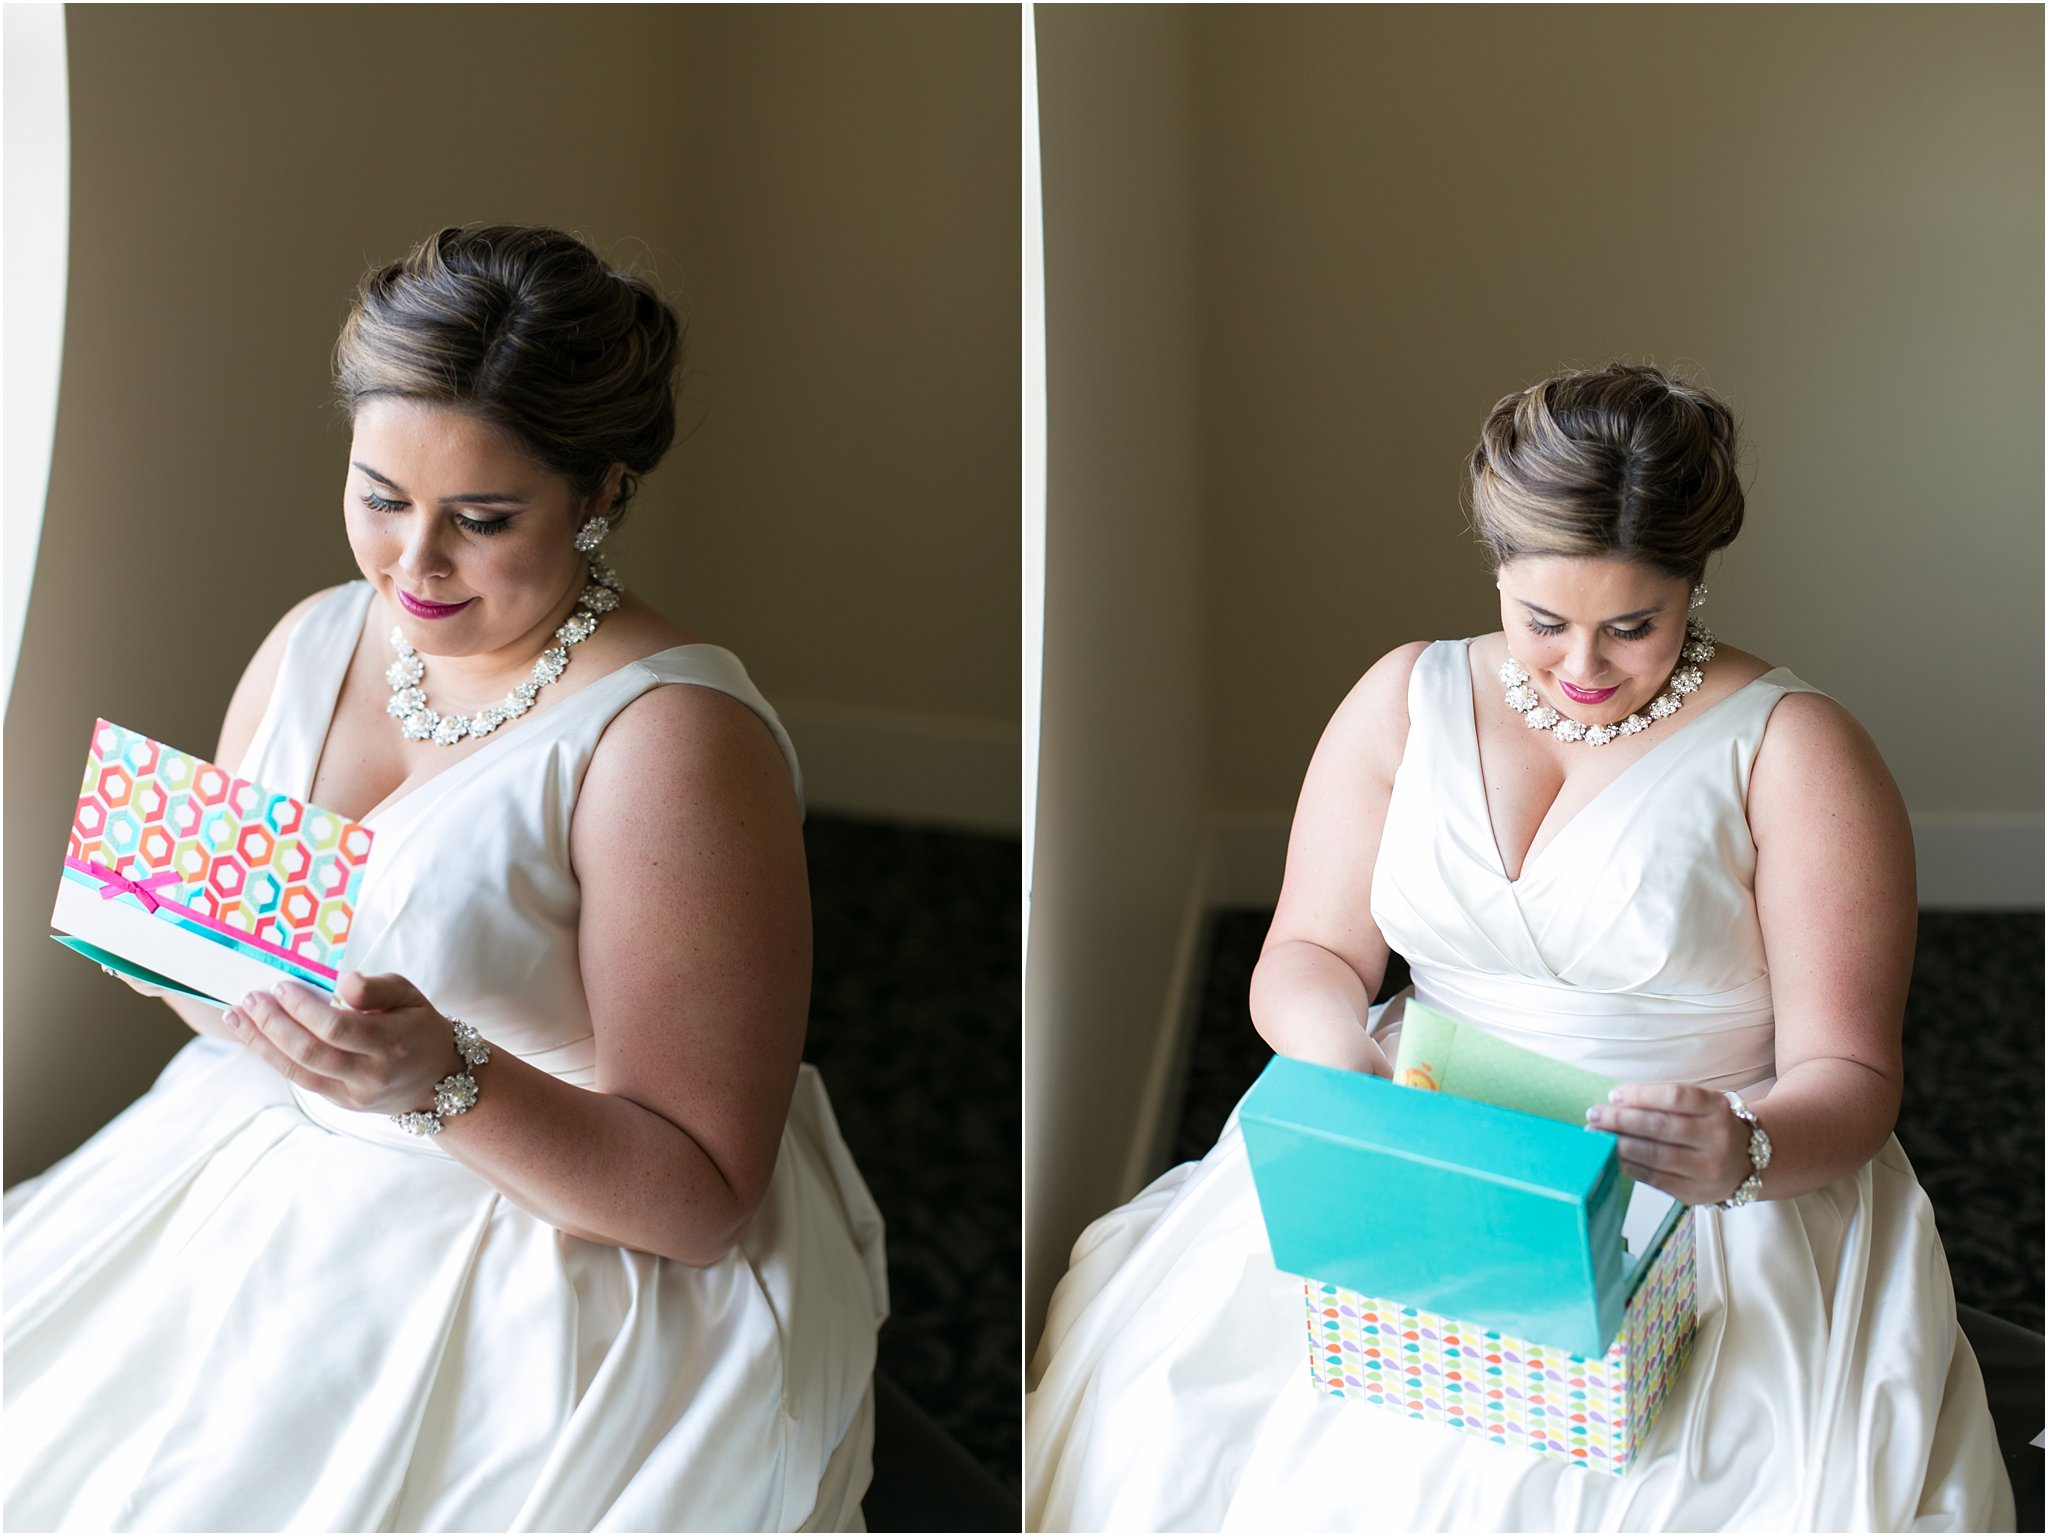 va_jessica_ryan_photography_virginia_wedding_norfolk_harrison_opera_house_norfolk_arts_district_portraits_3770